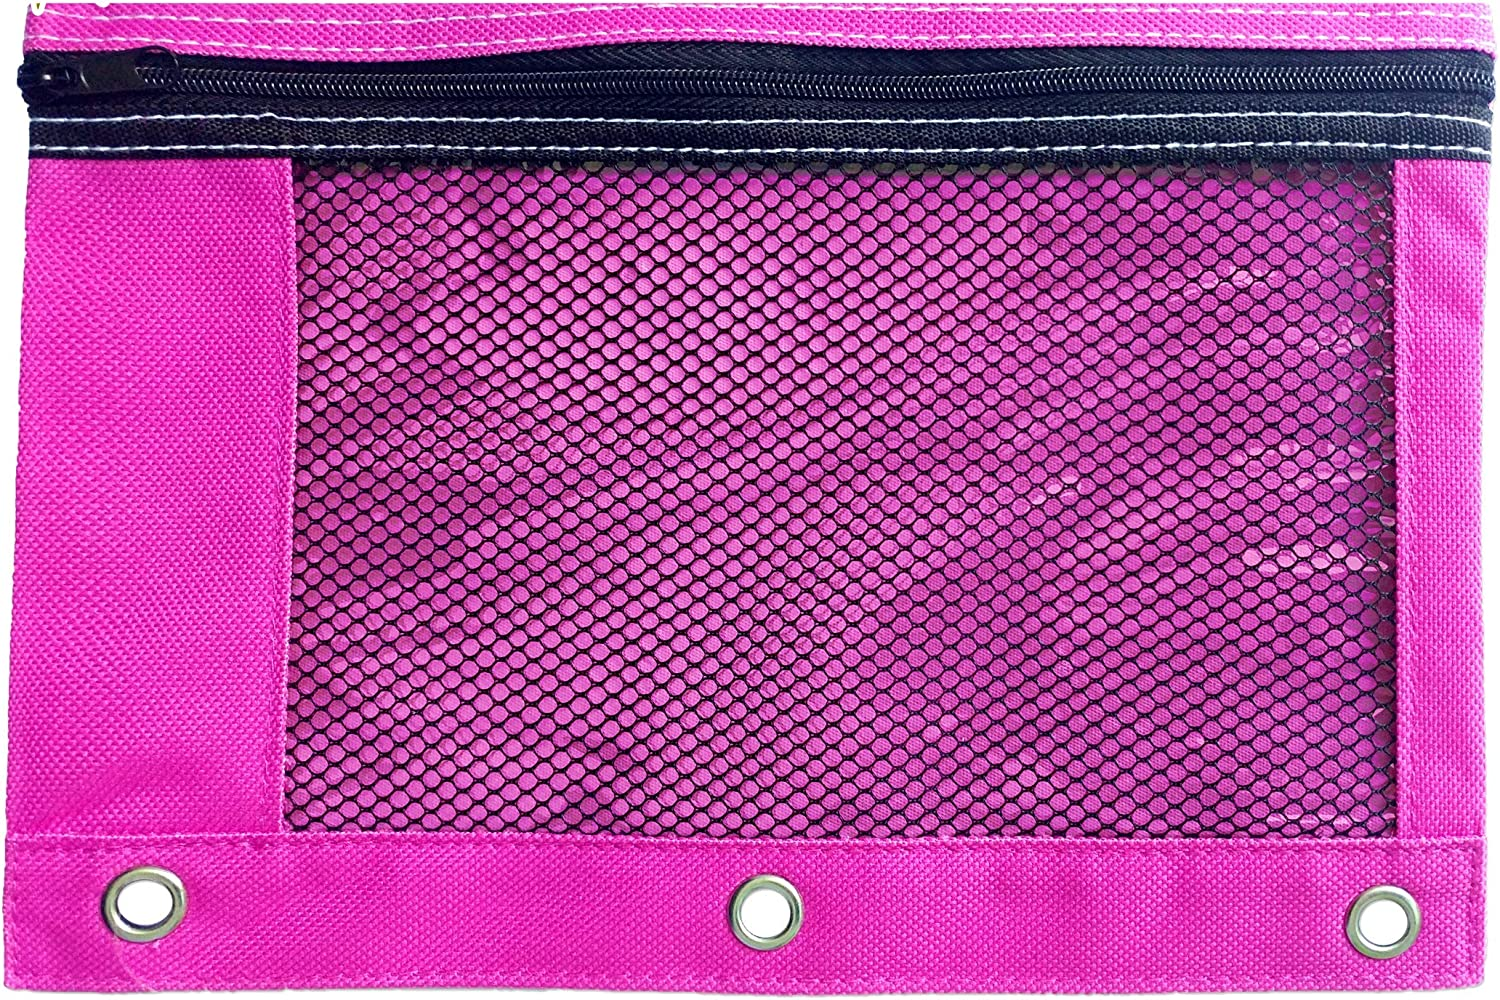 Mega Value 6 Pack for Use in and Out of the Classroom. 3 Ring Colorful Pencil Case with Mesh and plastic window 6 Pack Multi-colored Zippered Pencil Pouch Set by School Smarts